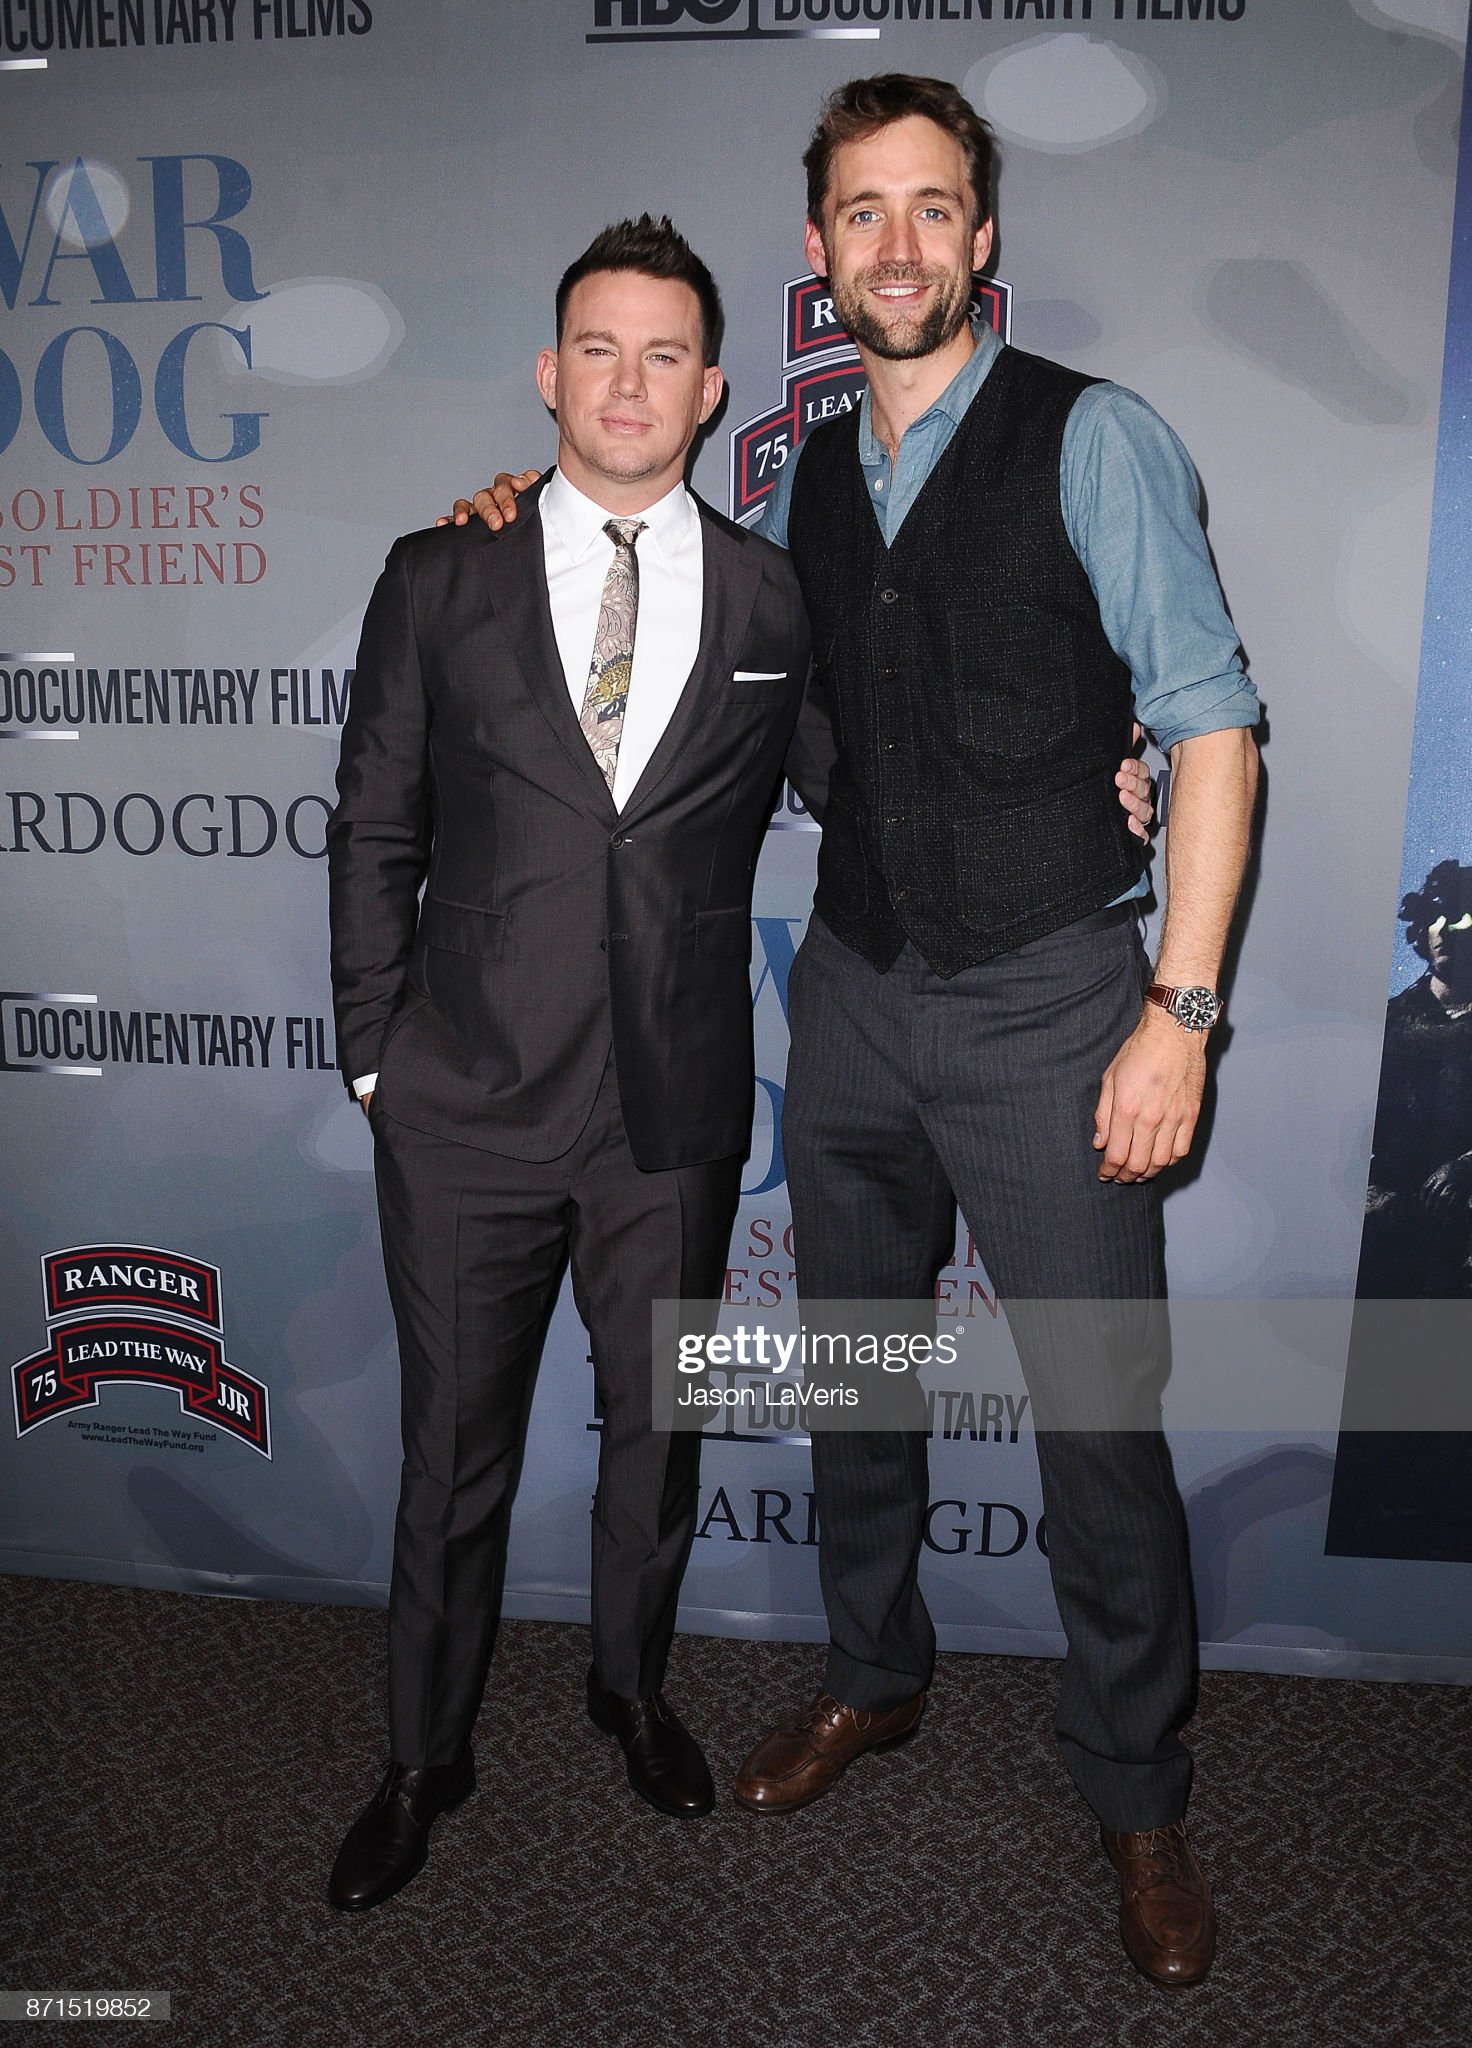 ¿Cuánto mide Channing Tatum? - Altura - Real height Producers-channing-tatum-and-reid-carolin-attend-the-premiere-of-war-picture-id871519852?s=2048x2048